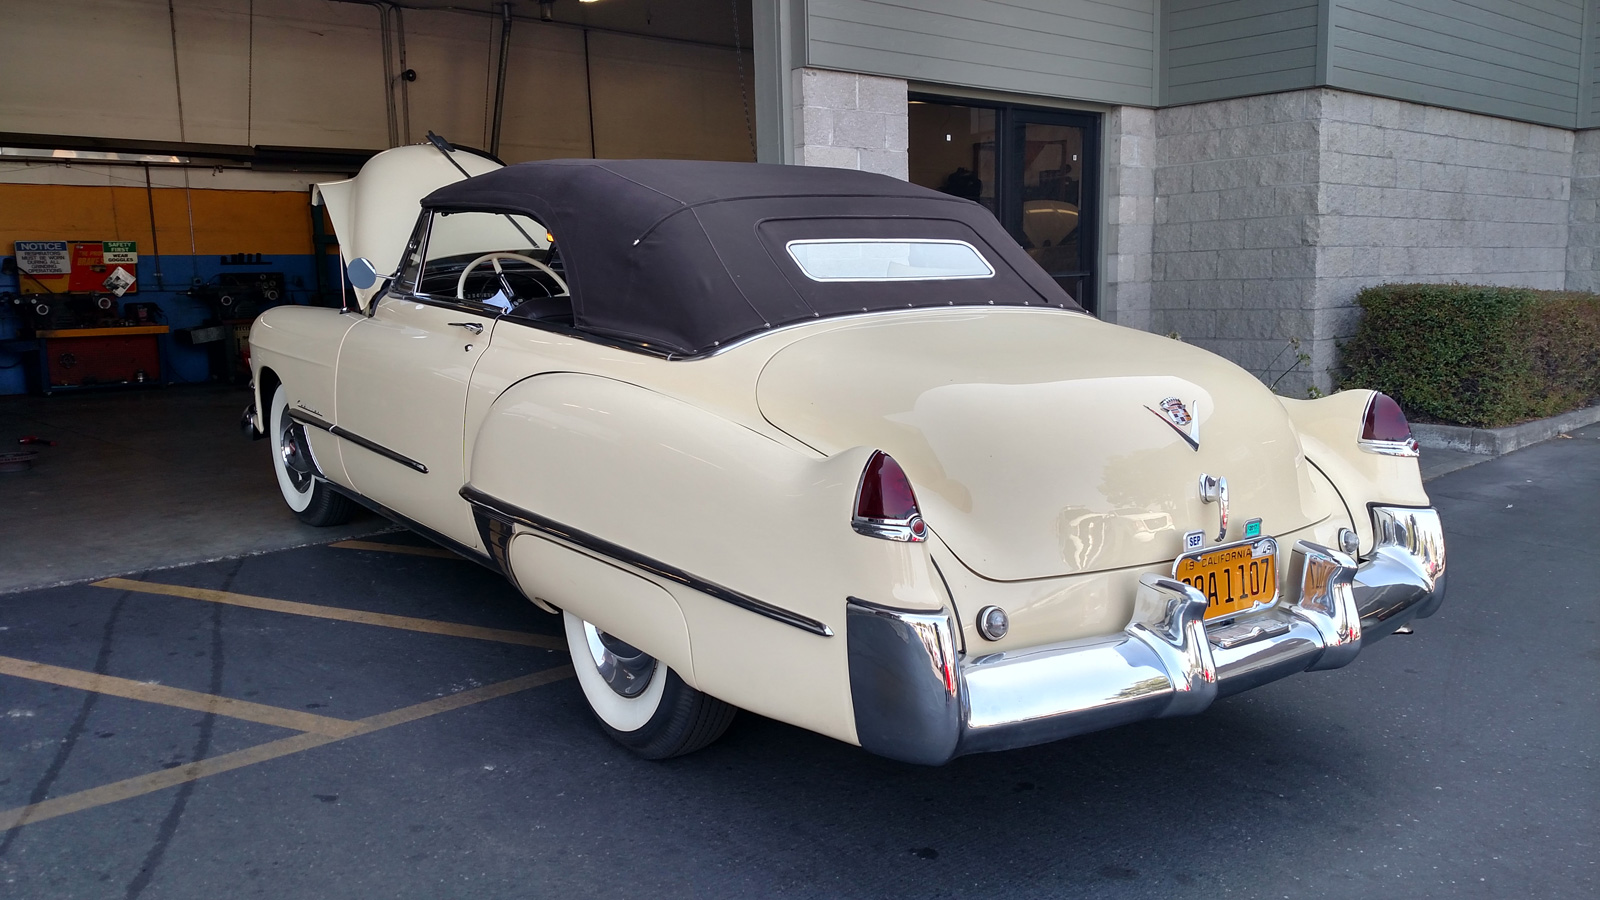 1949 Cadiallac being serviced at Tristar Automotive in Santa Rosa, CA.